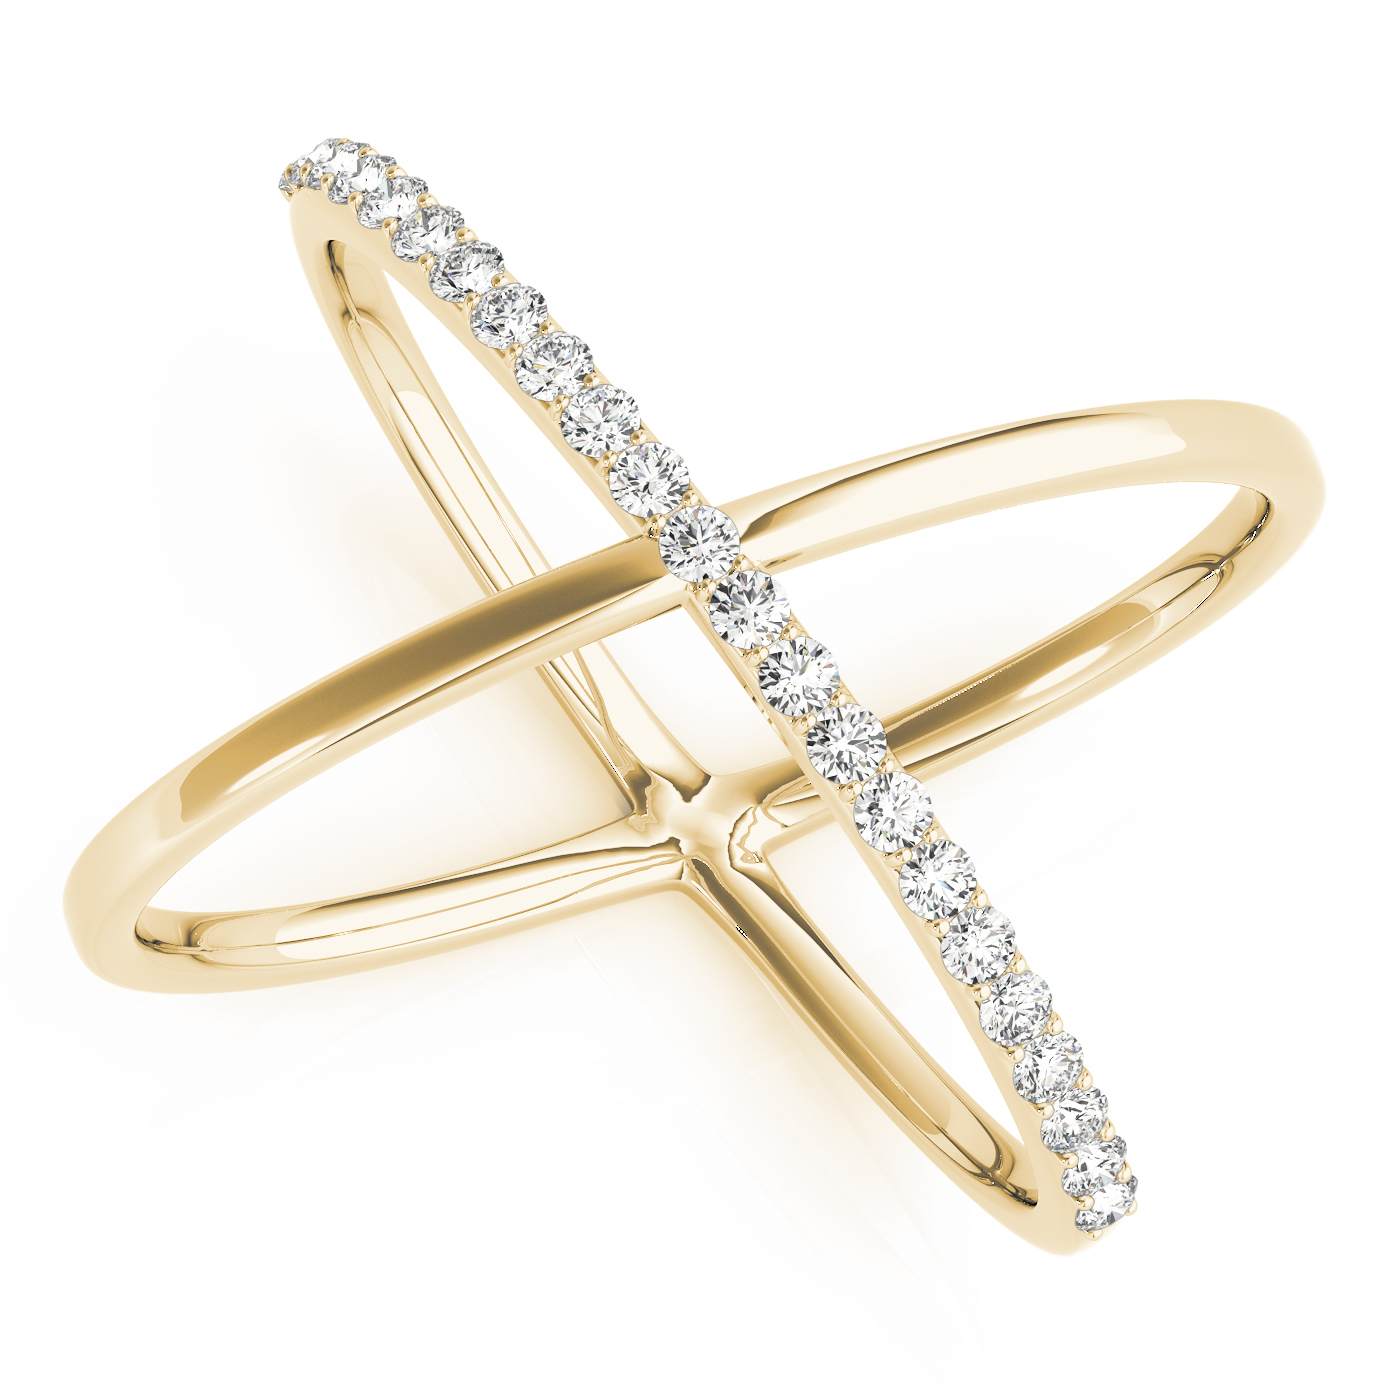 14k-yellow-gold-open-concept-diamond-engagement-ring-84802_ring